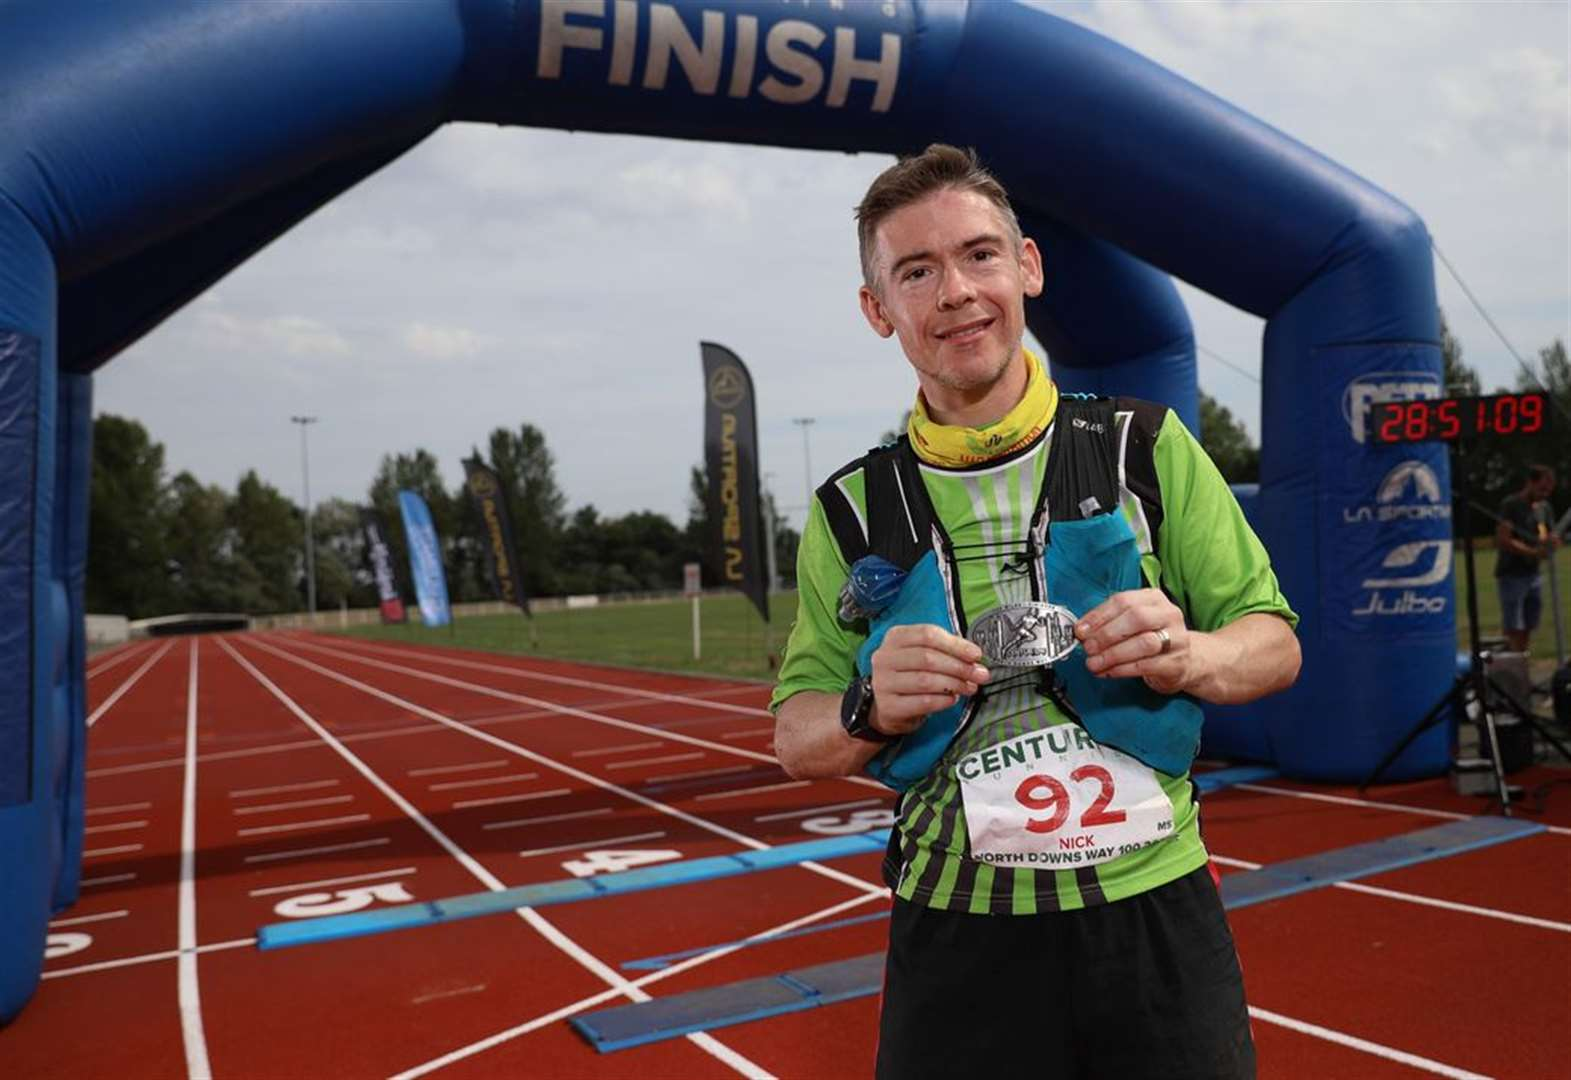 Town runner goes through Payne barrier to complete 100 mile race